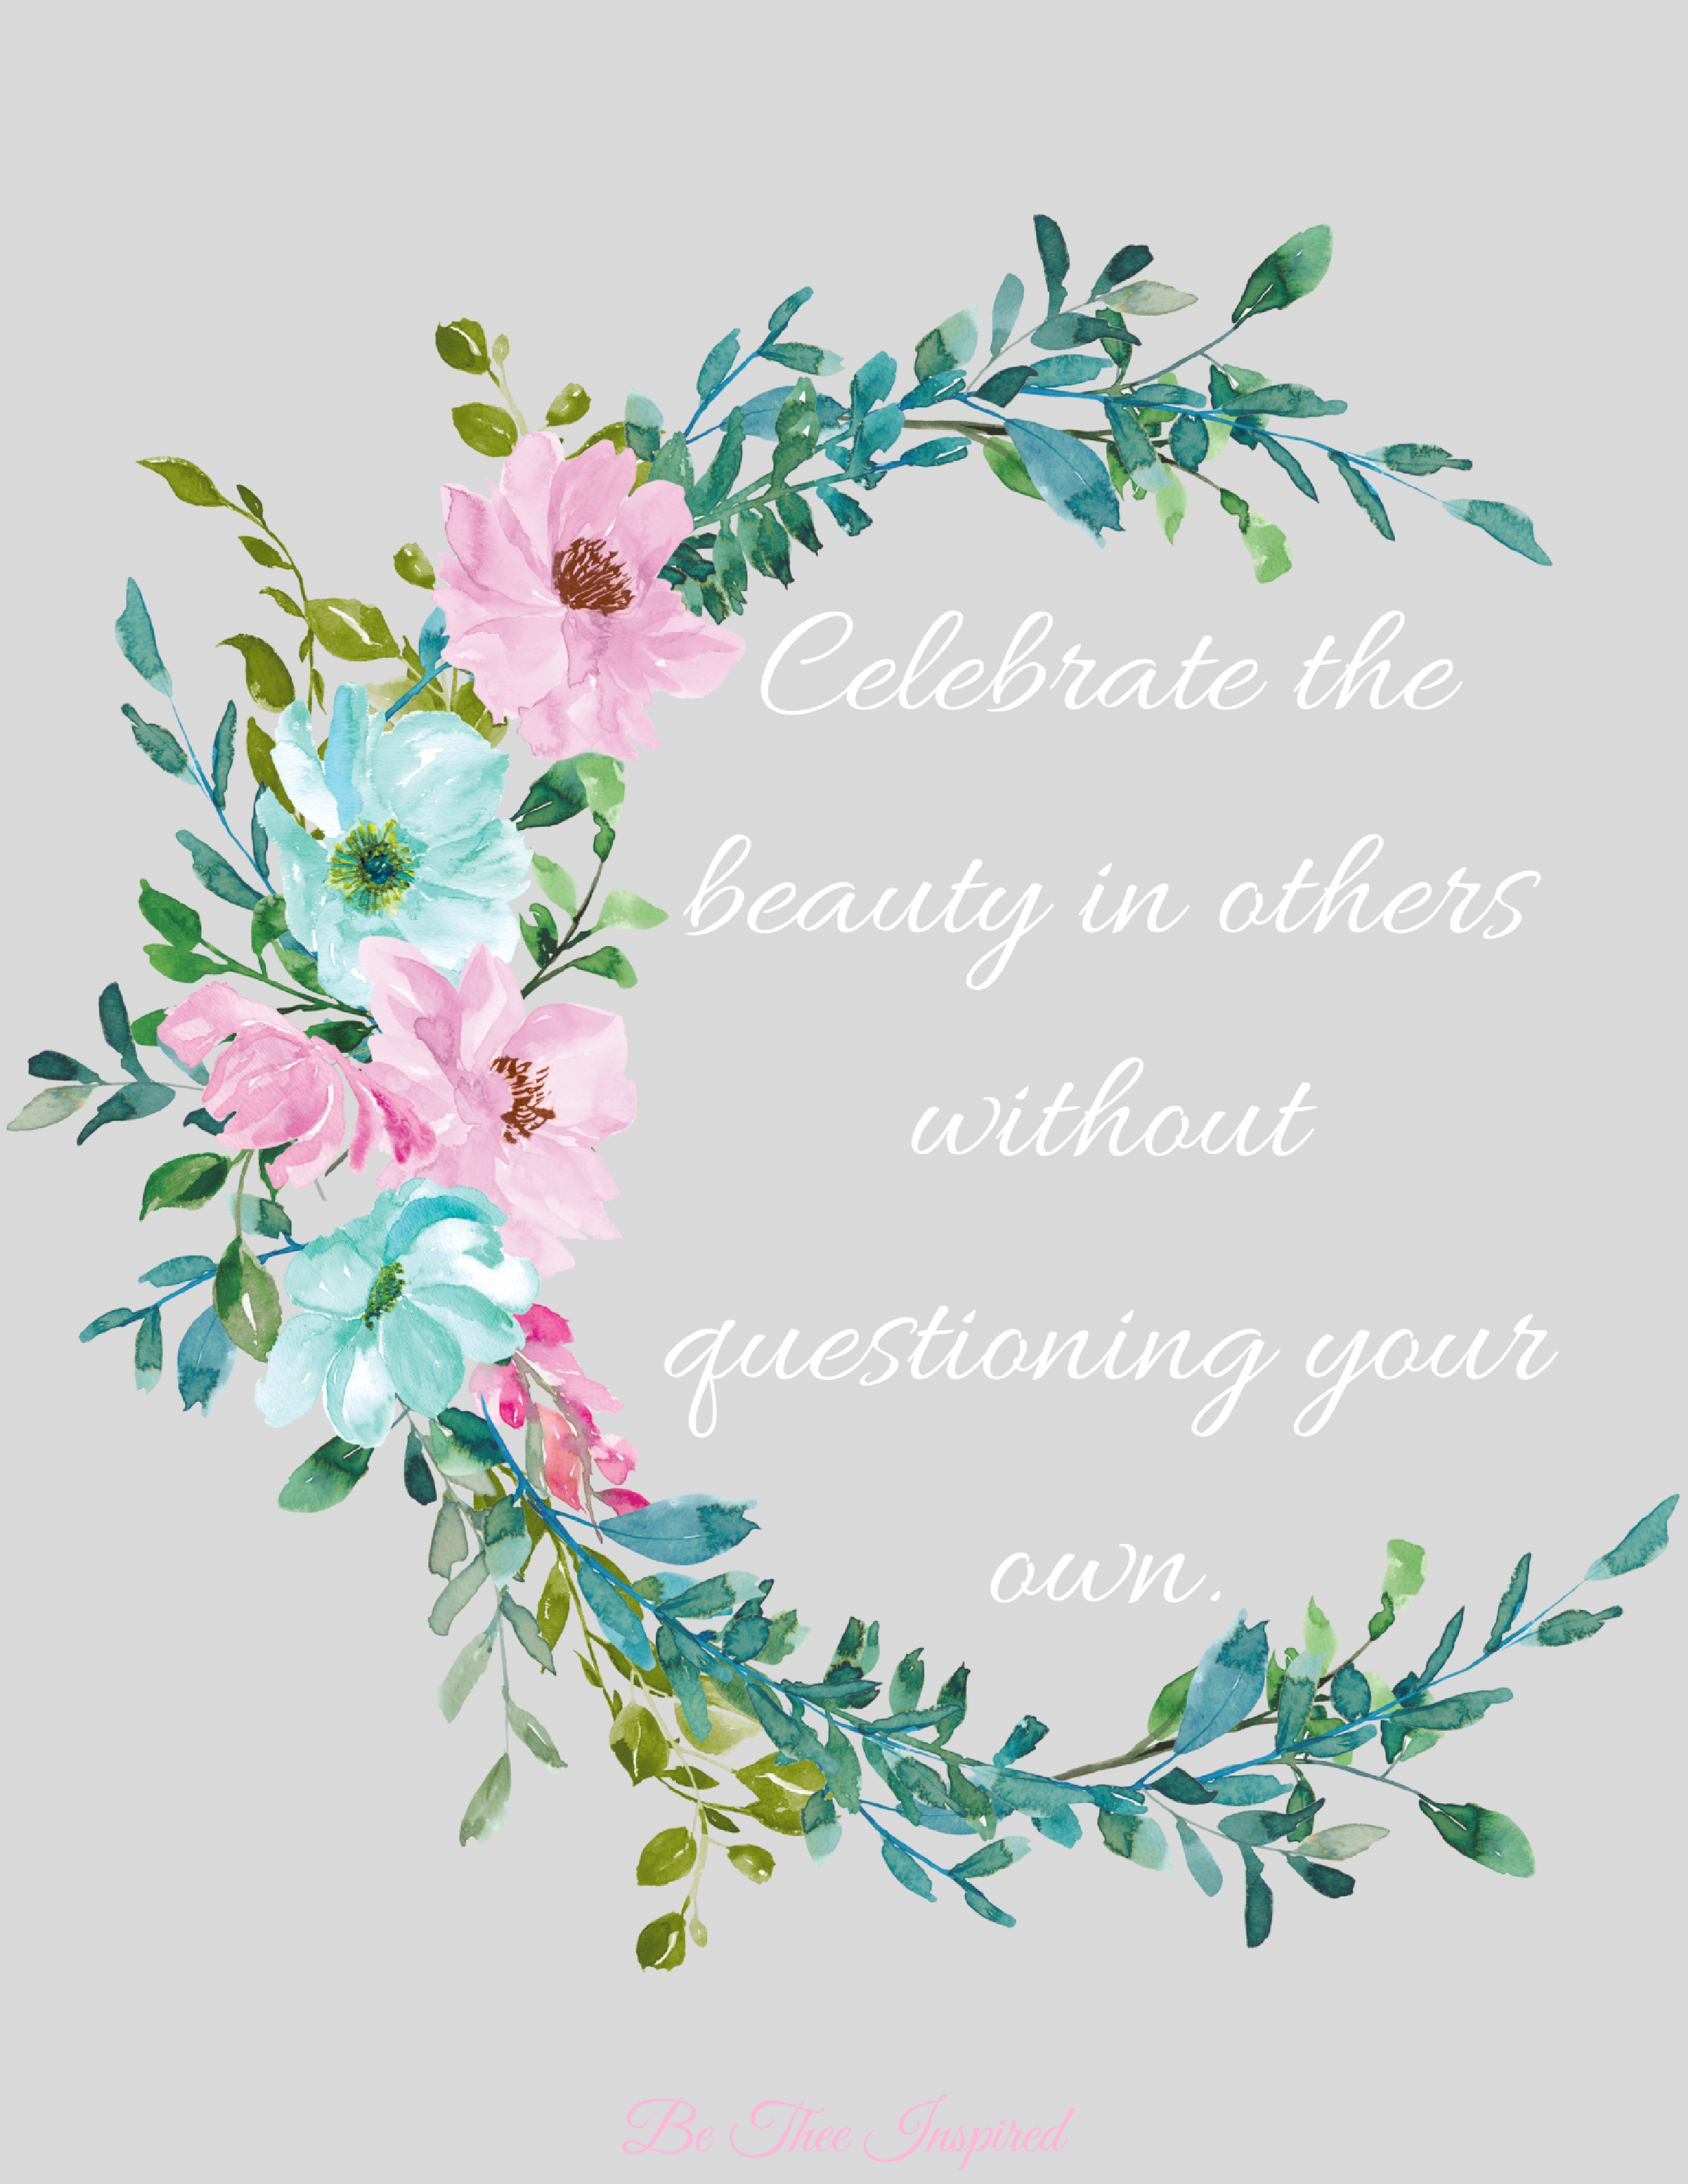 How To Be Victorious Over Your Insecurities Insecure Women Insecure Bible Verse Wallpaper